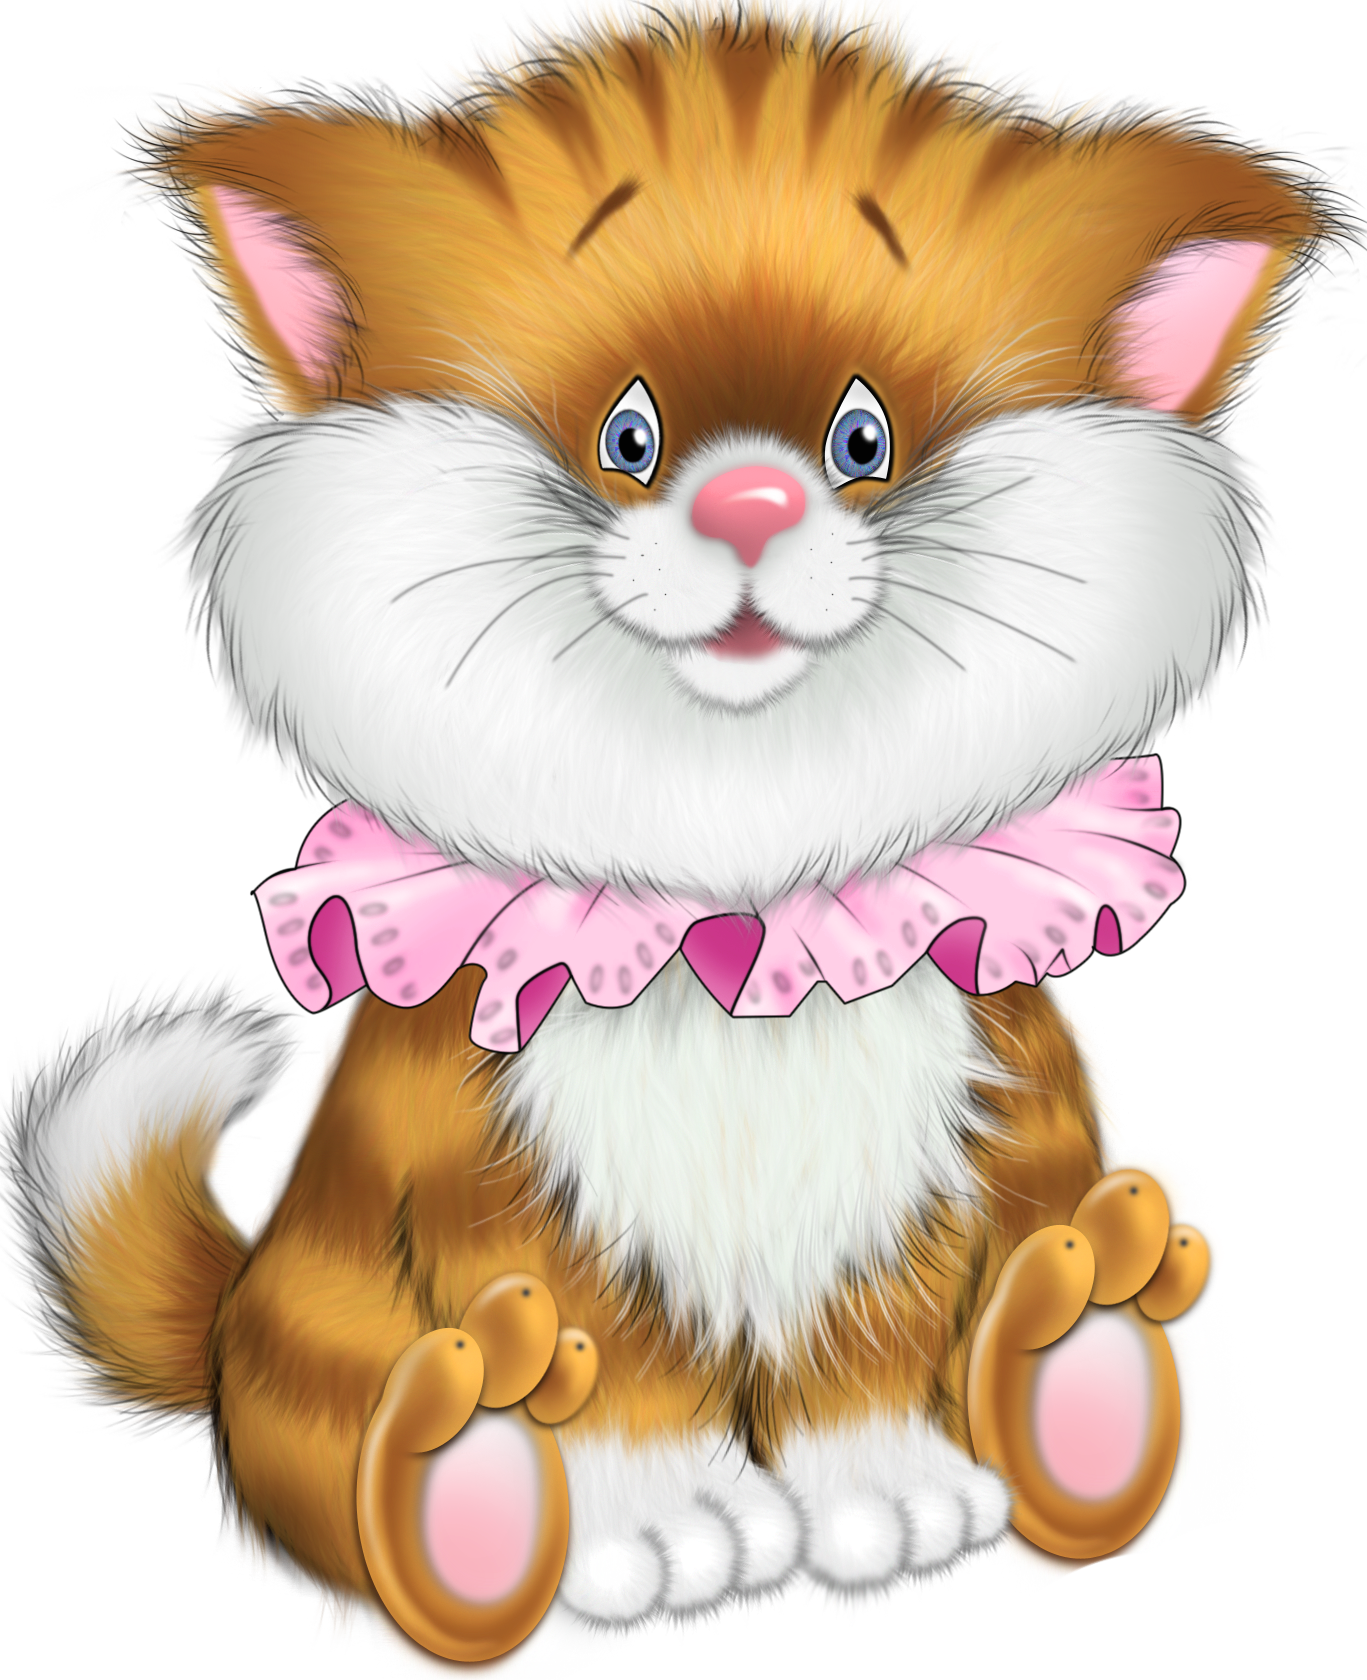 Kitty cat clipart clip transparent Tiger Clip Art Images Images | Crazy Gallery - Leechh Link Site ... clip transparent